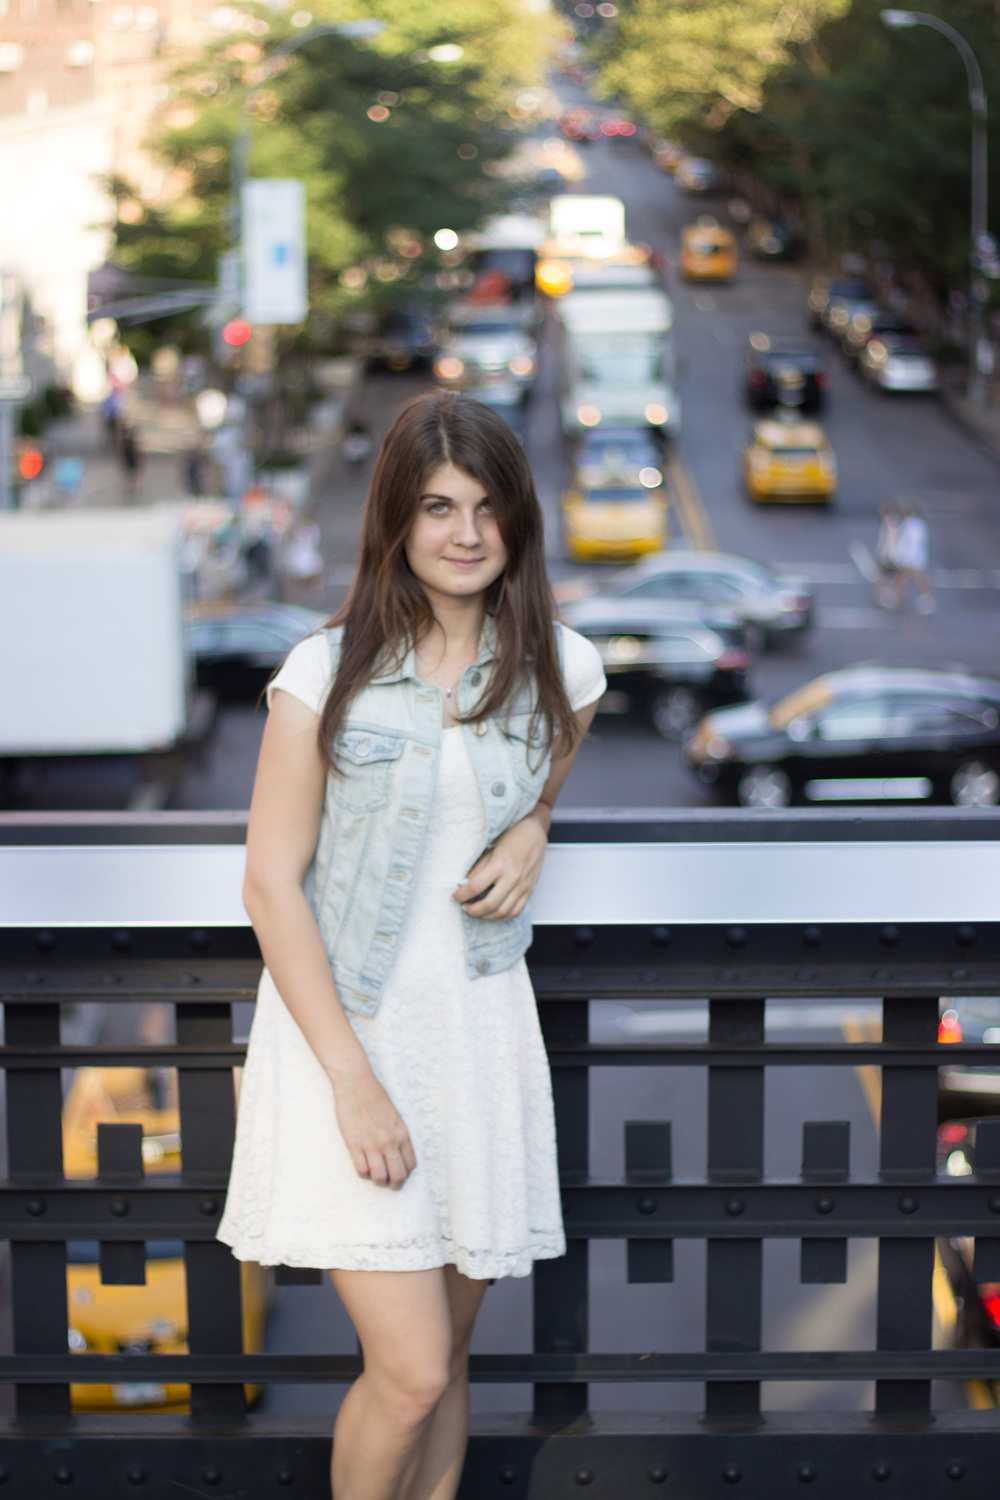 katya chelsea high line senior denim white dress irra korrelat walksmilesnap new york.jpg